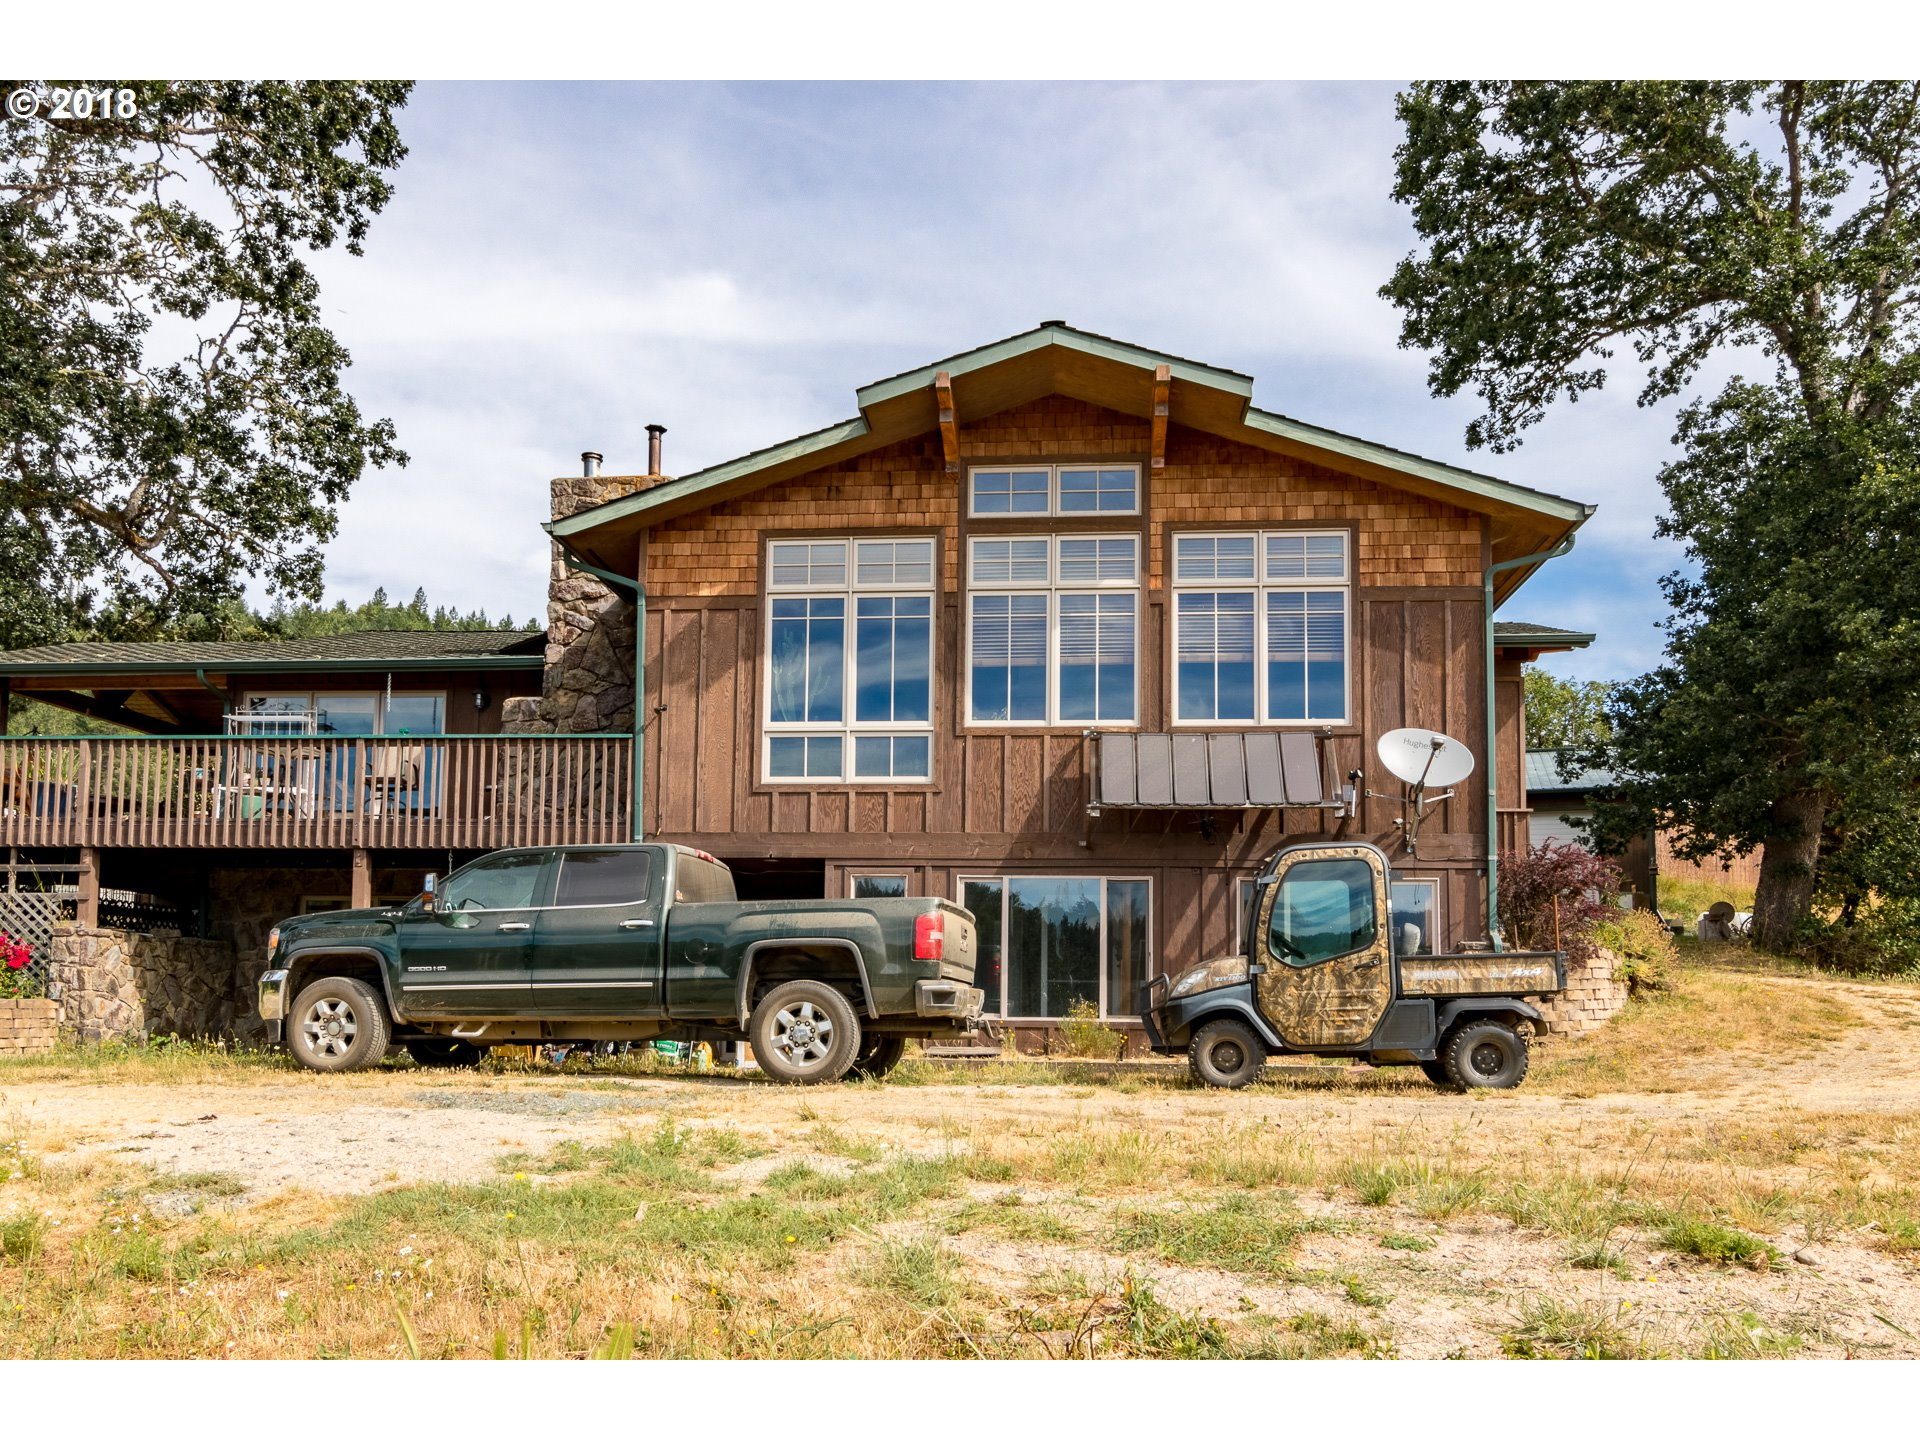 Shady Cove, OR 4 Bedroom Home For Sale